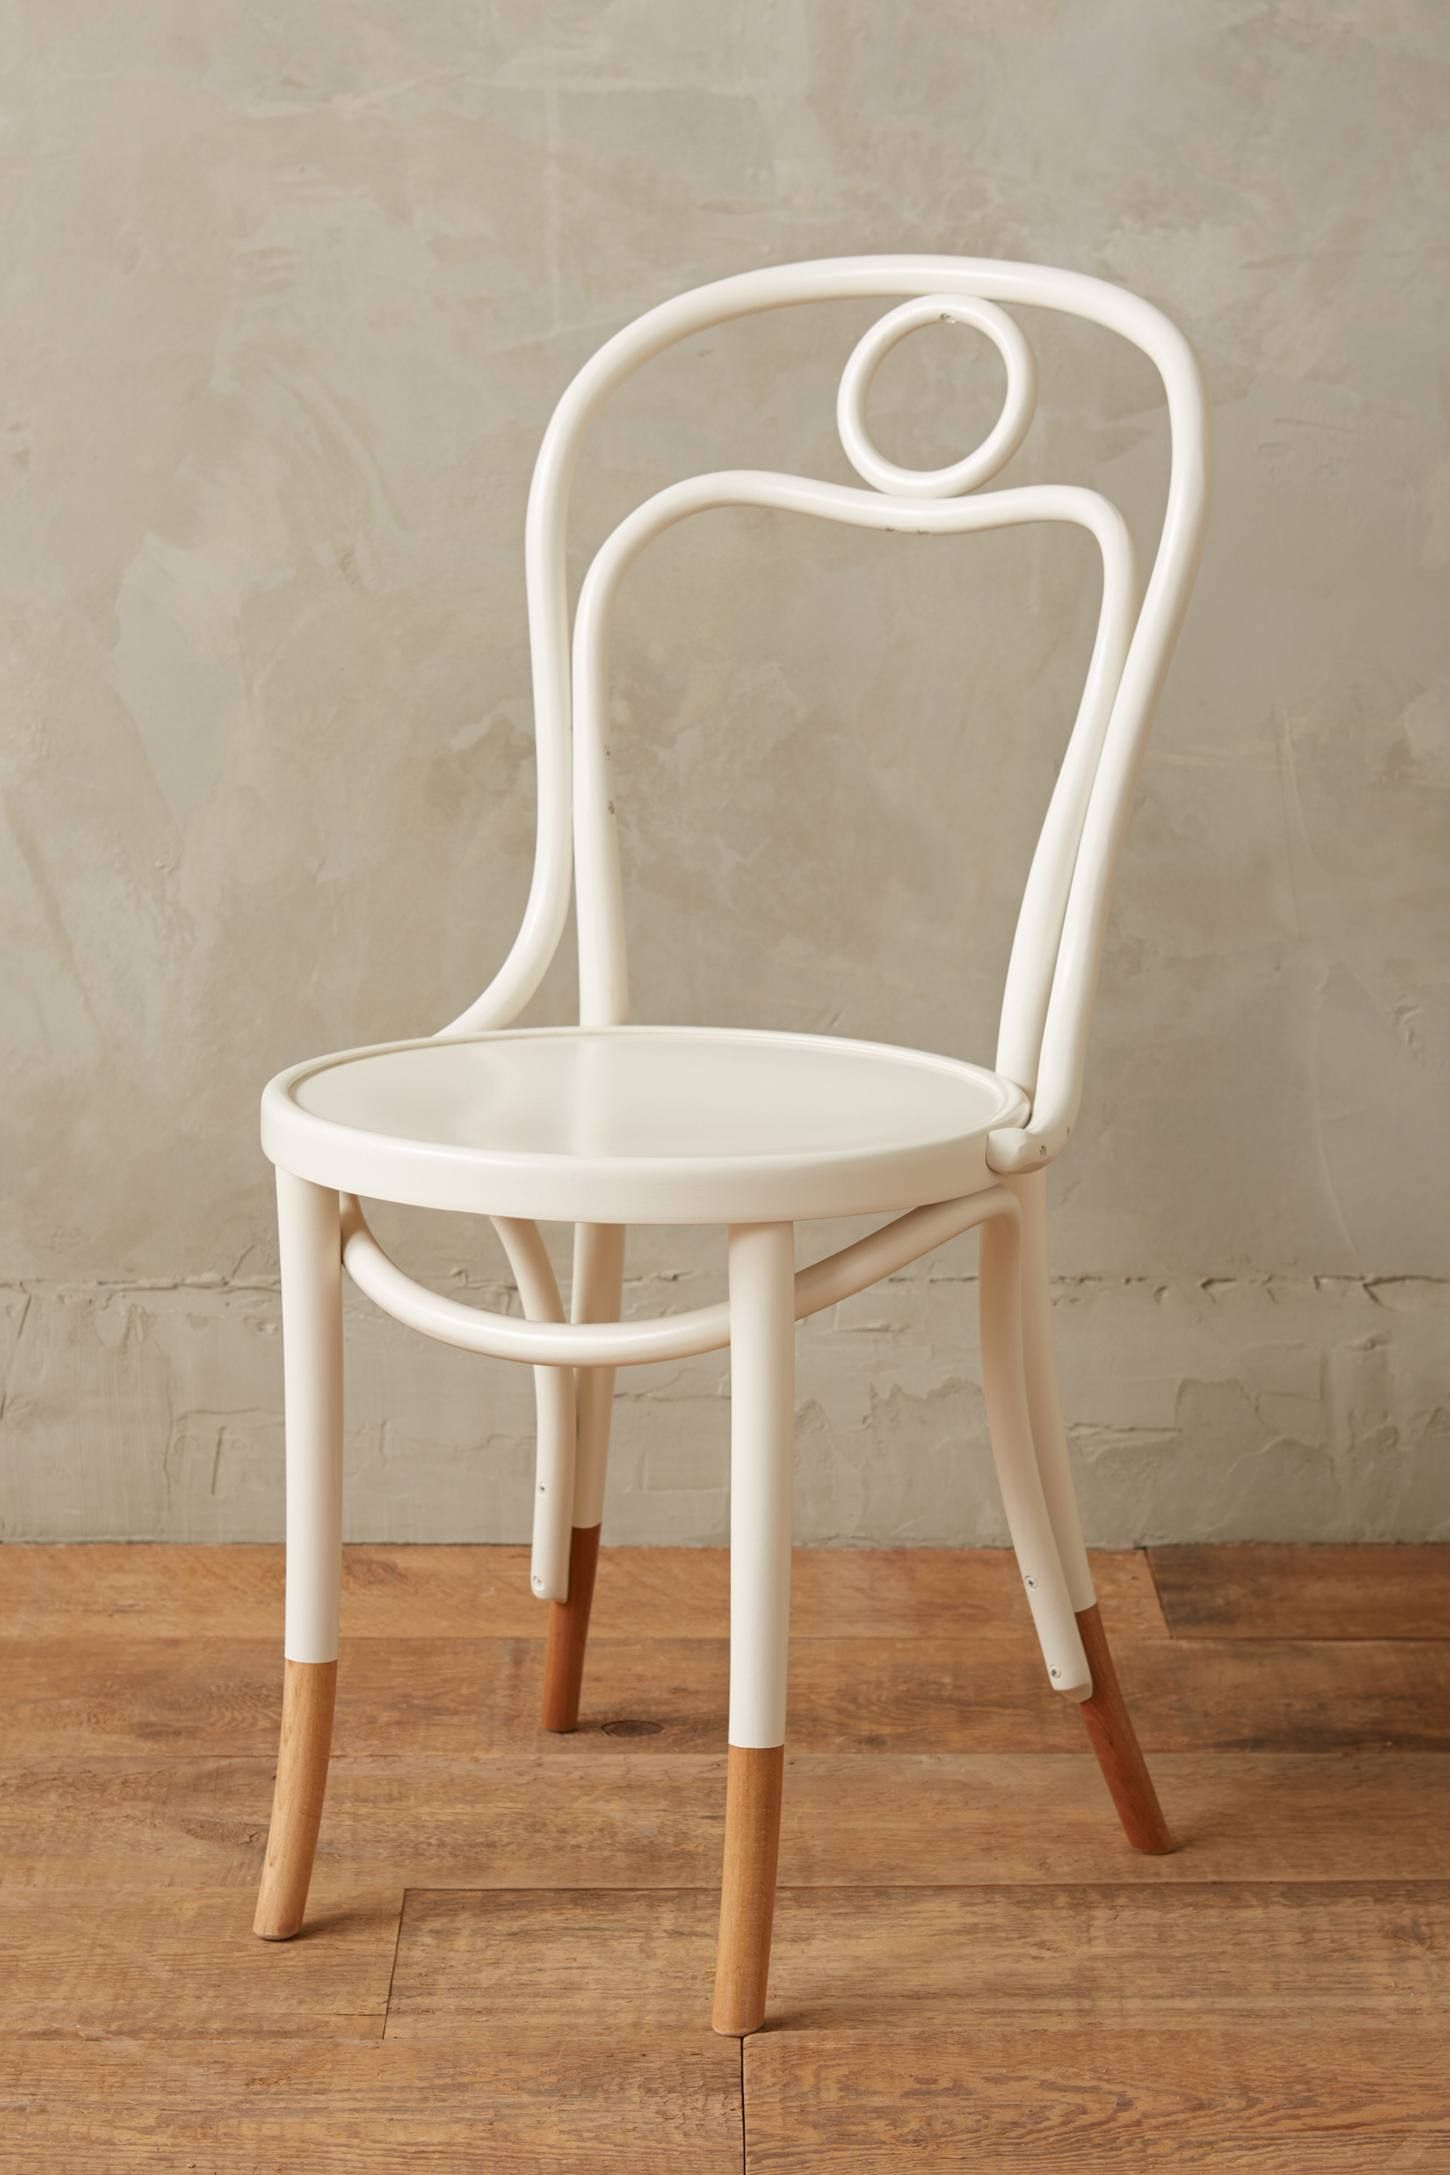 Bentwood Dining Chair Ice Fishing Chairs Scrolled Circle Pinterest Shop The And More Anthropologie At Today Read Customer Reviews Discover Product Details